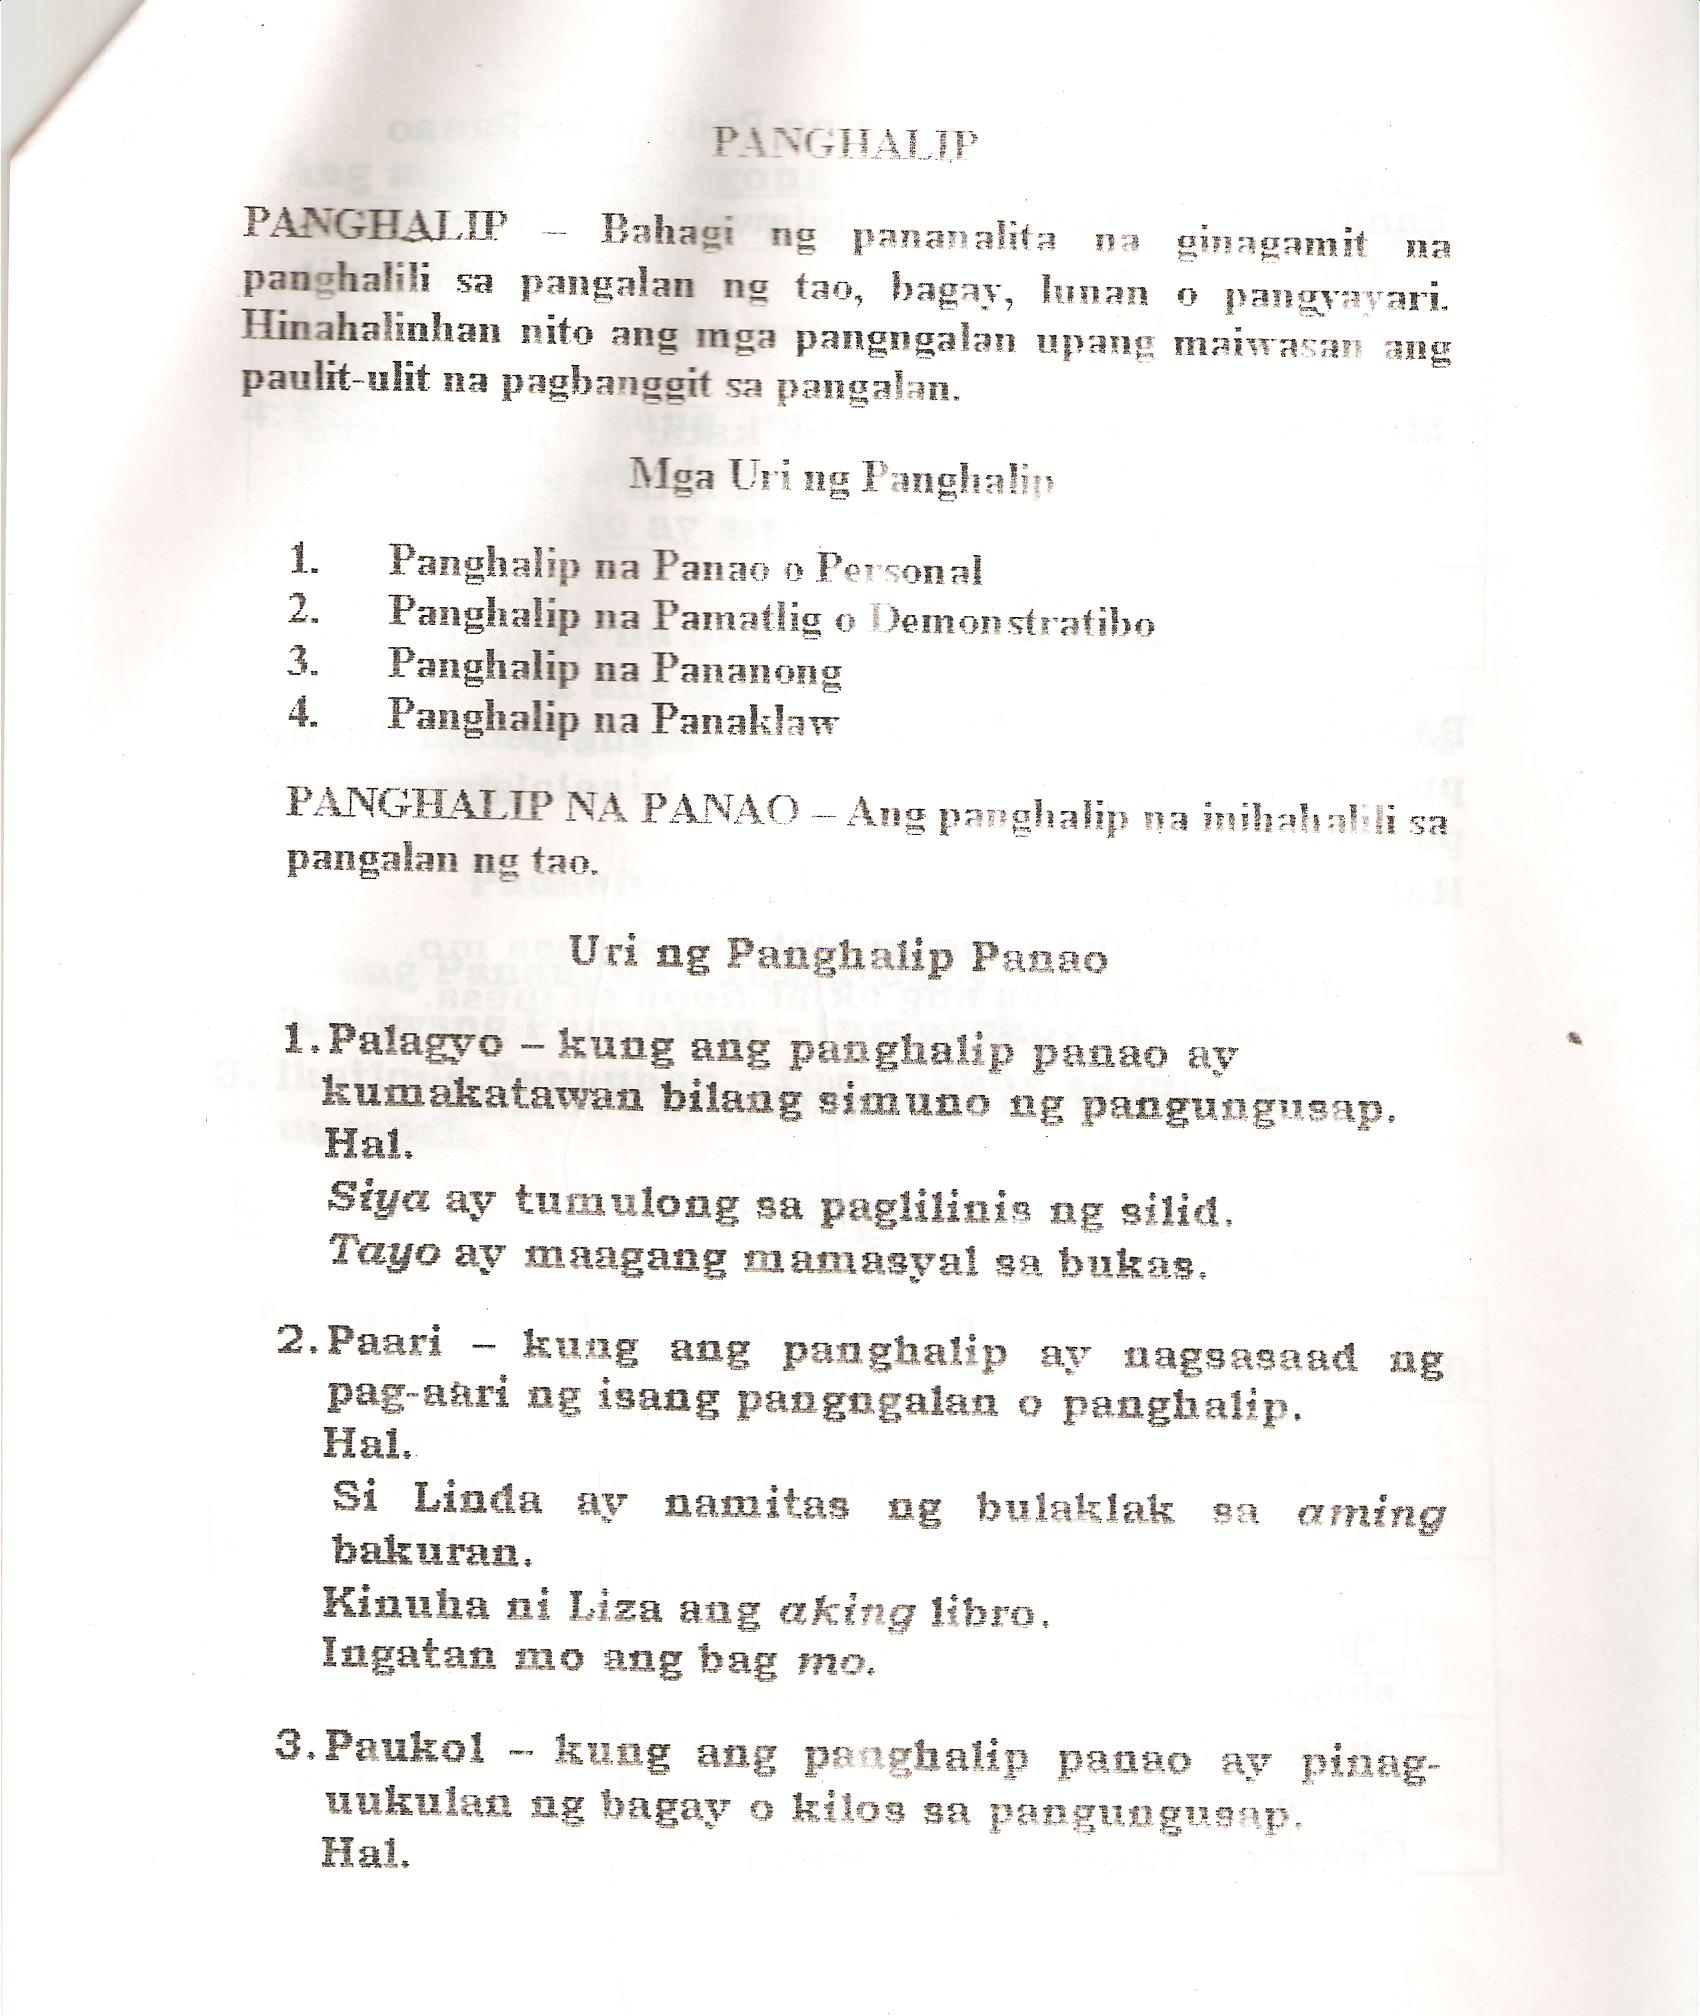 Worksheets Panghalip Paari